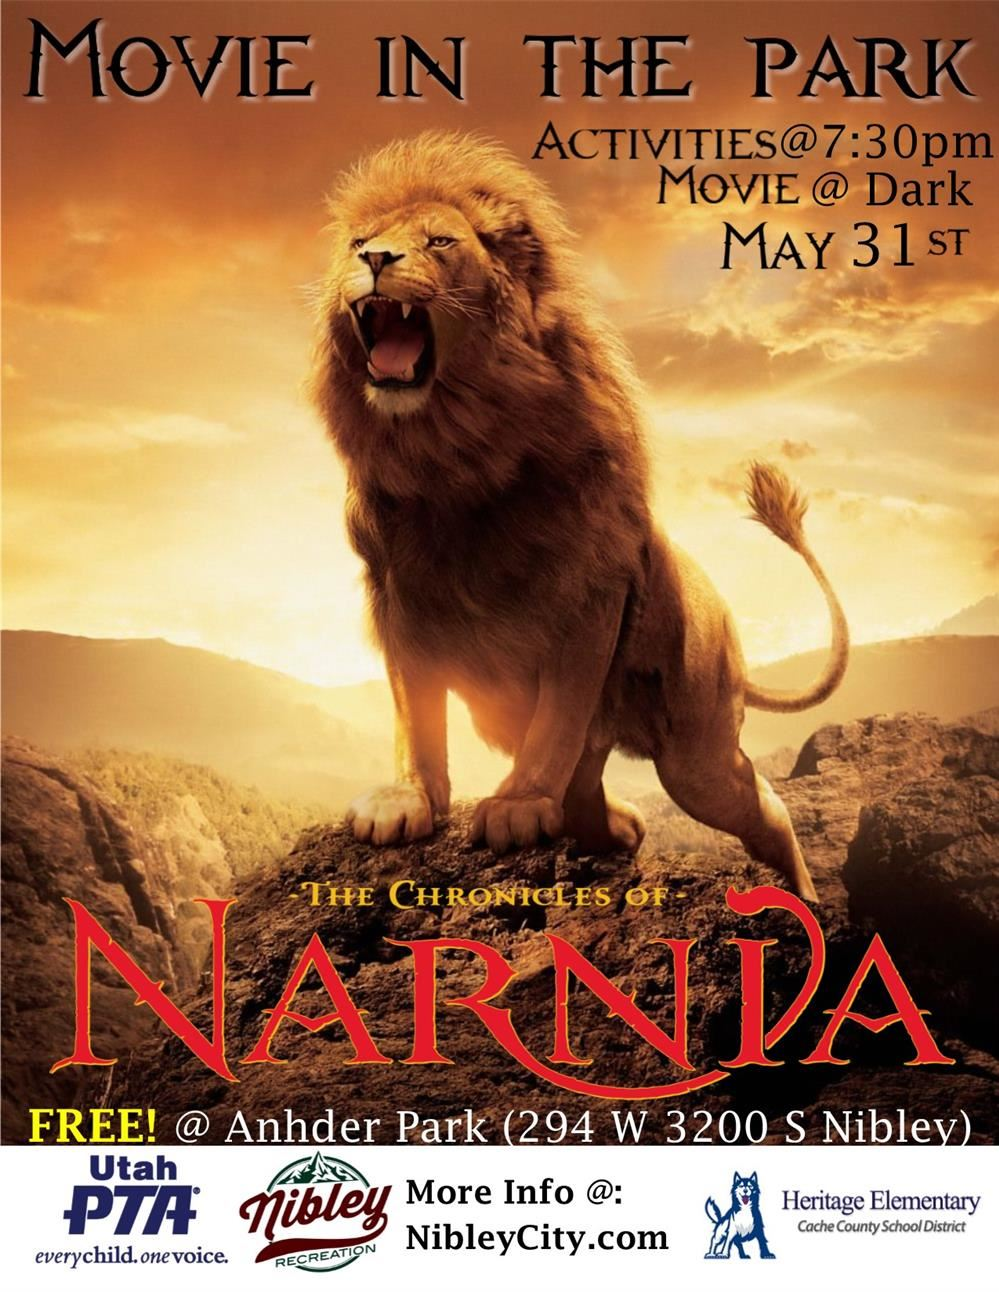 Movie in the Park May 31, activities starting at 7:30 pm, movie starts at dark. Anhder Park Nibley